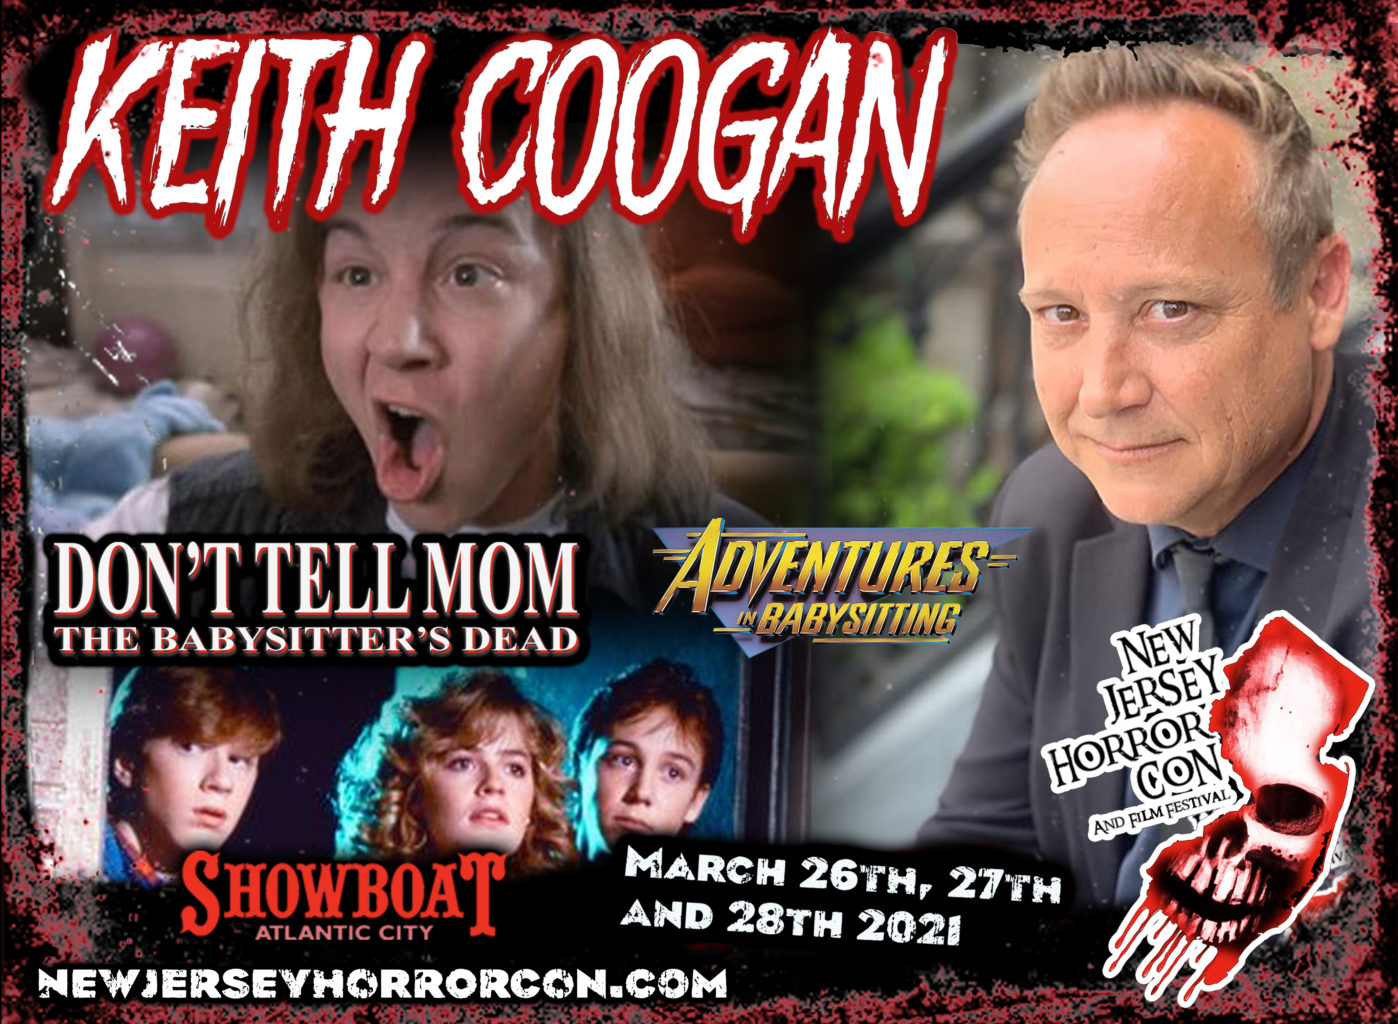 keith-coogan-march2021